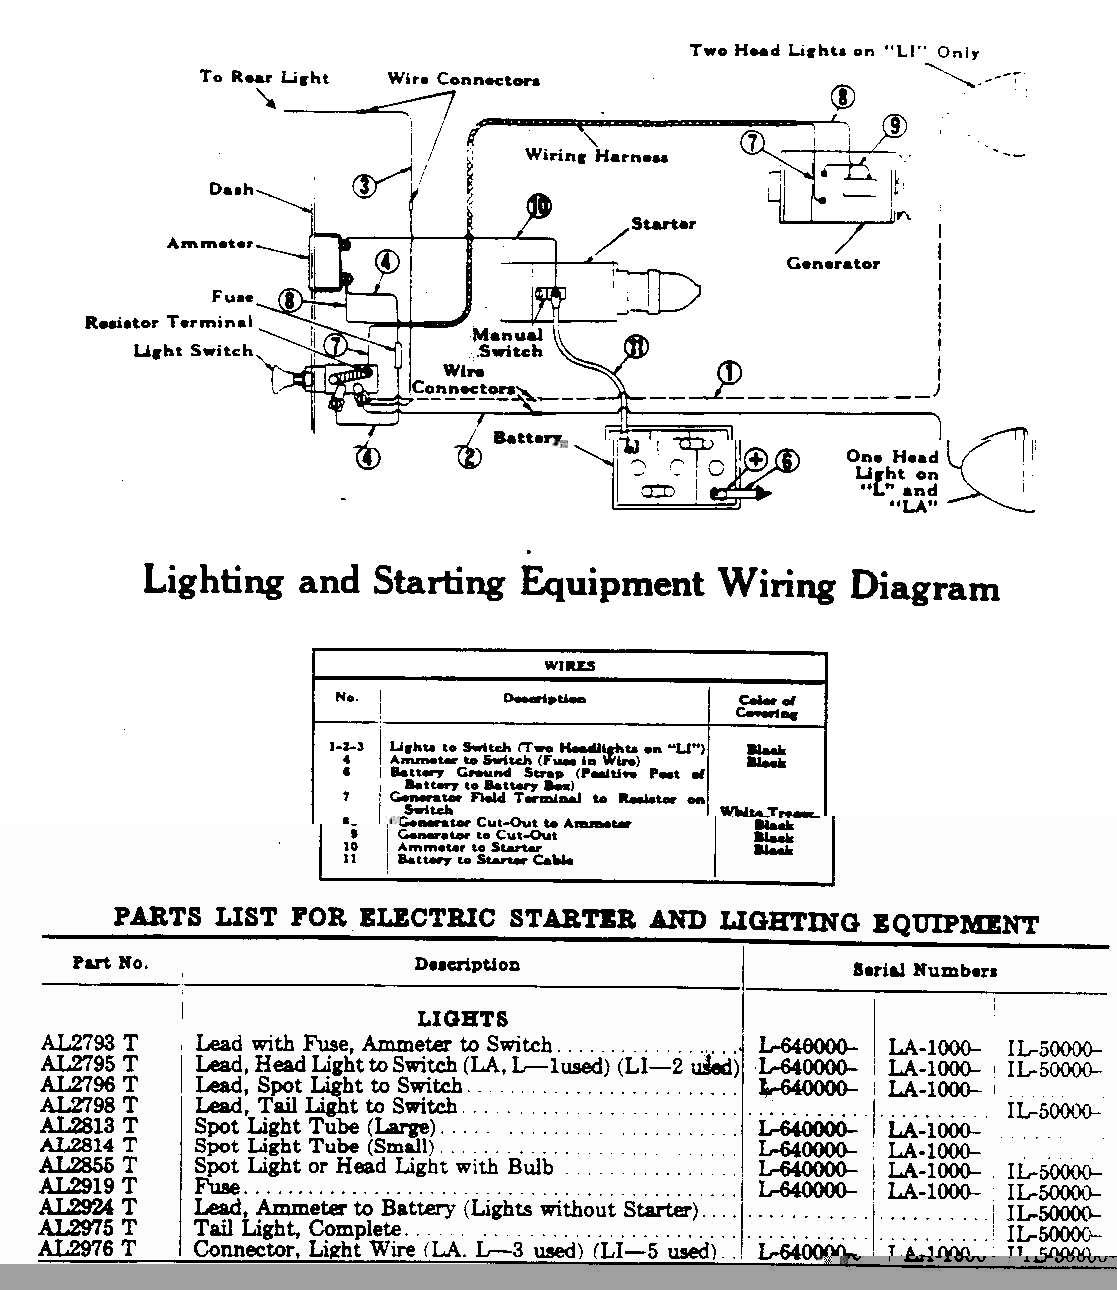 lwiring rusty acres ranch john deere 2010 wiring diagram at edmiracle.co